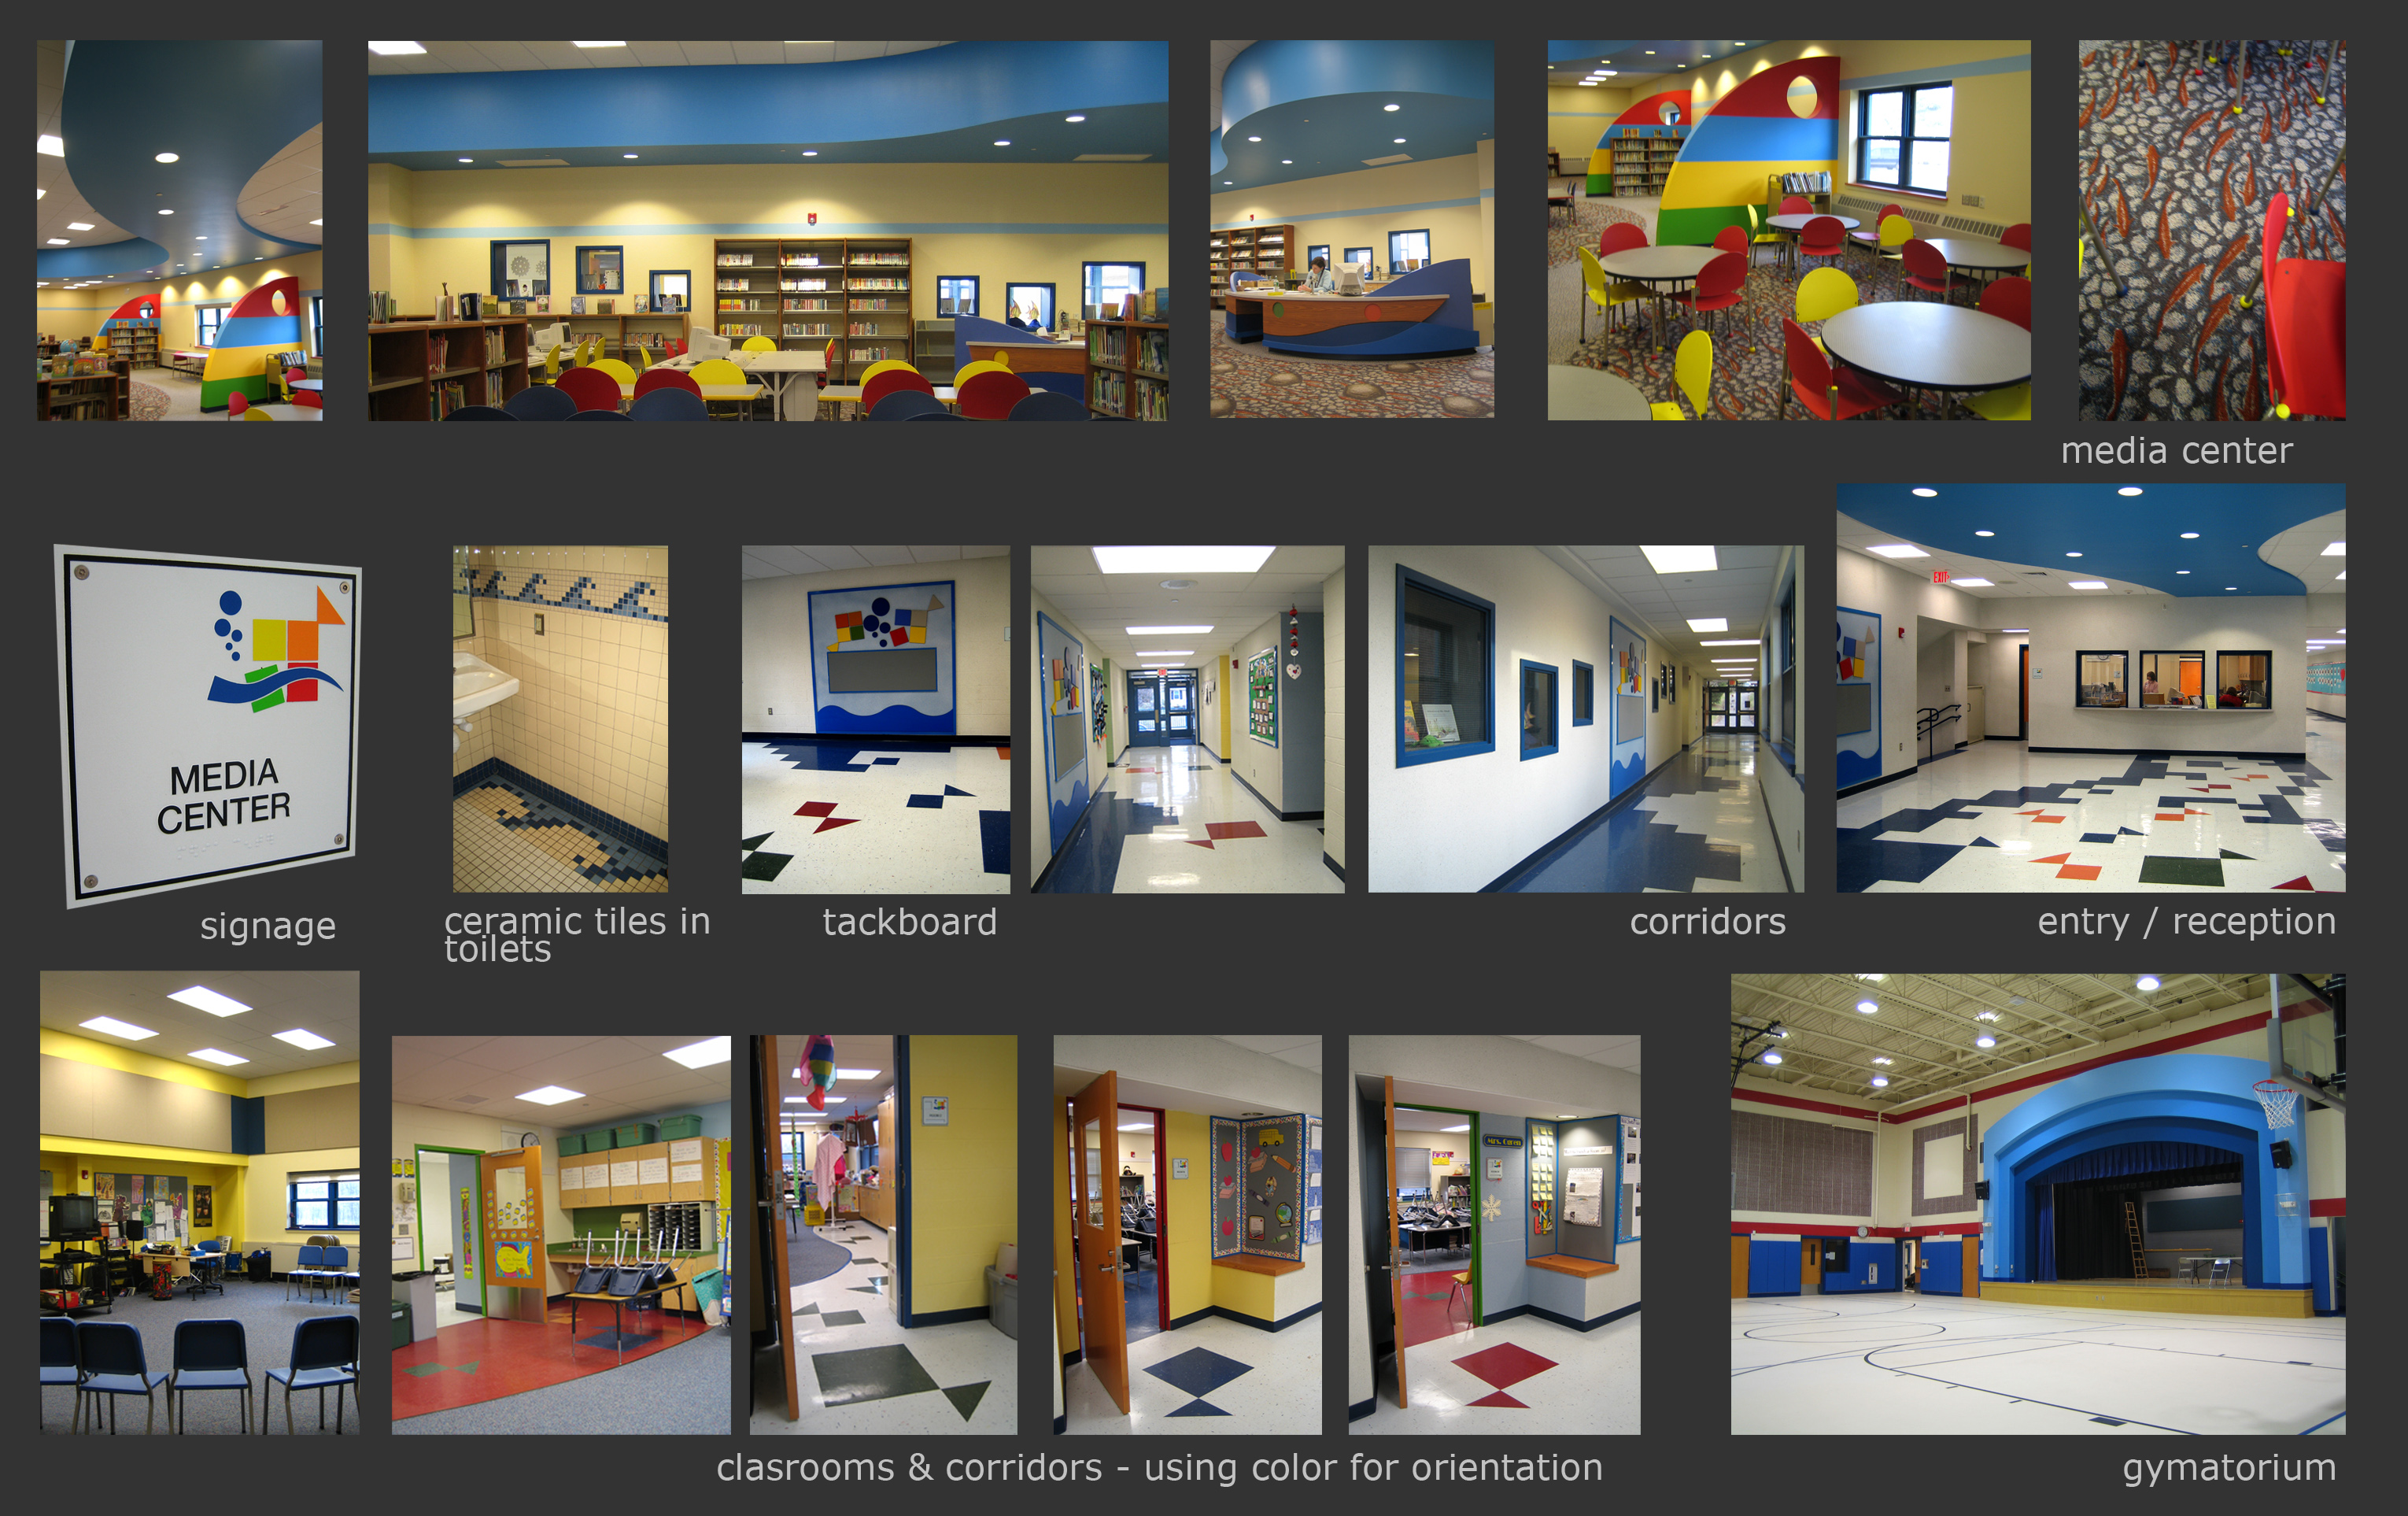 K 4 Grade Elementary School In Newington Ct The Images Comprise Of Interior Architecture Design Furniture And Specification Metaphor